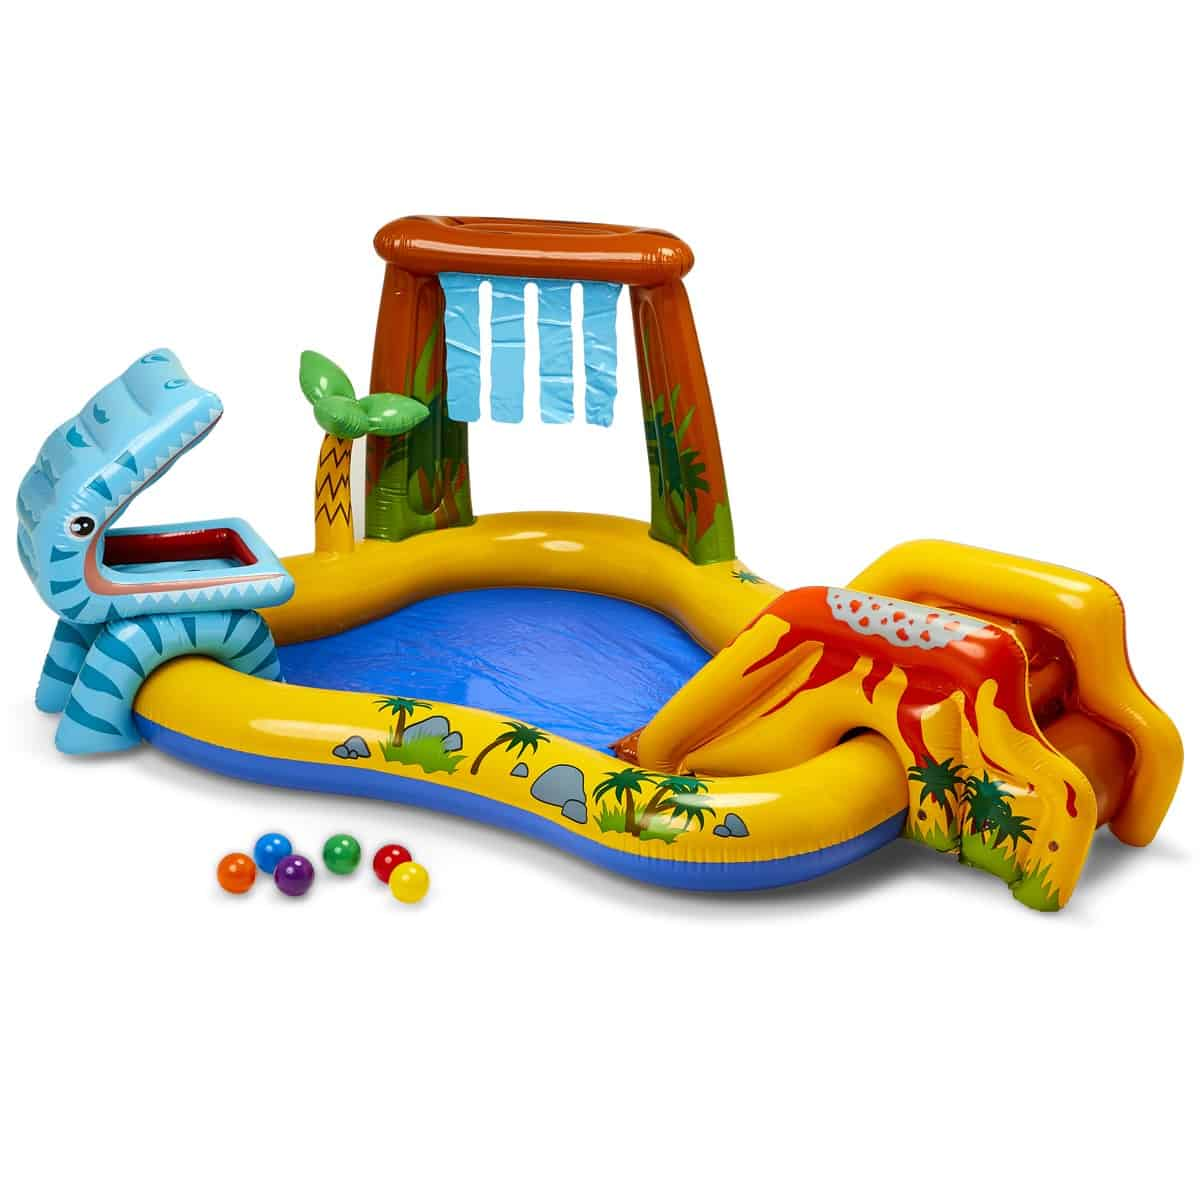 Intex Dinosaur Inflatable Play Center - Best dinosaour kiddie pool